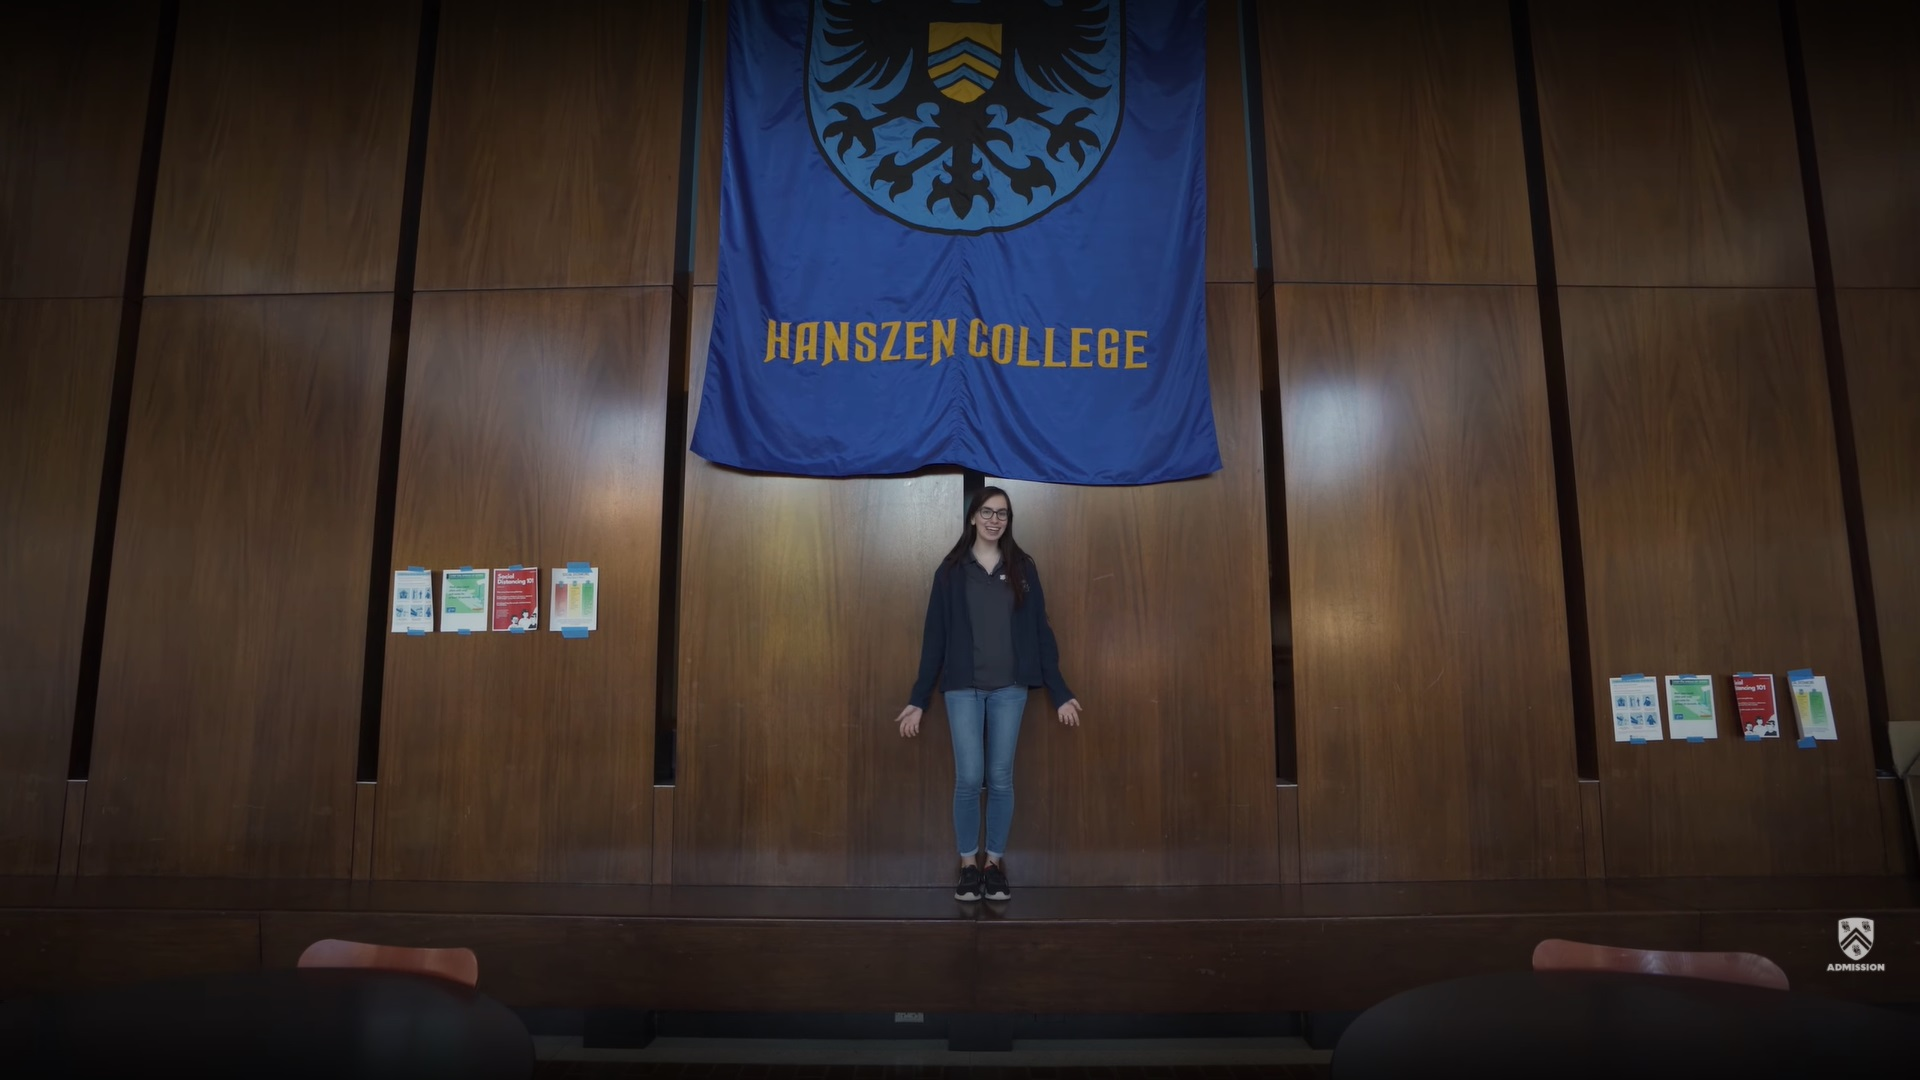 """Student stands inside of the Hanszen College commons in front of a large blue banner that reads """"Hanszen College."""""""